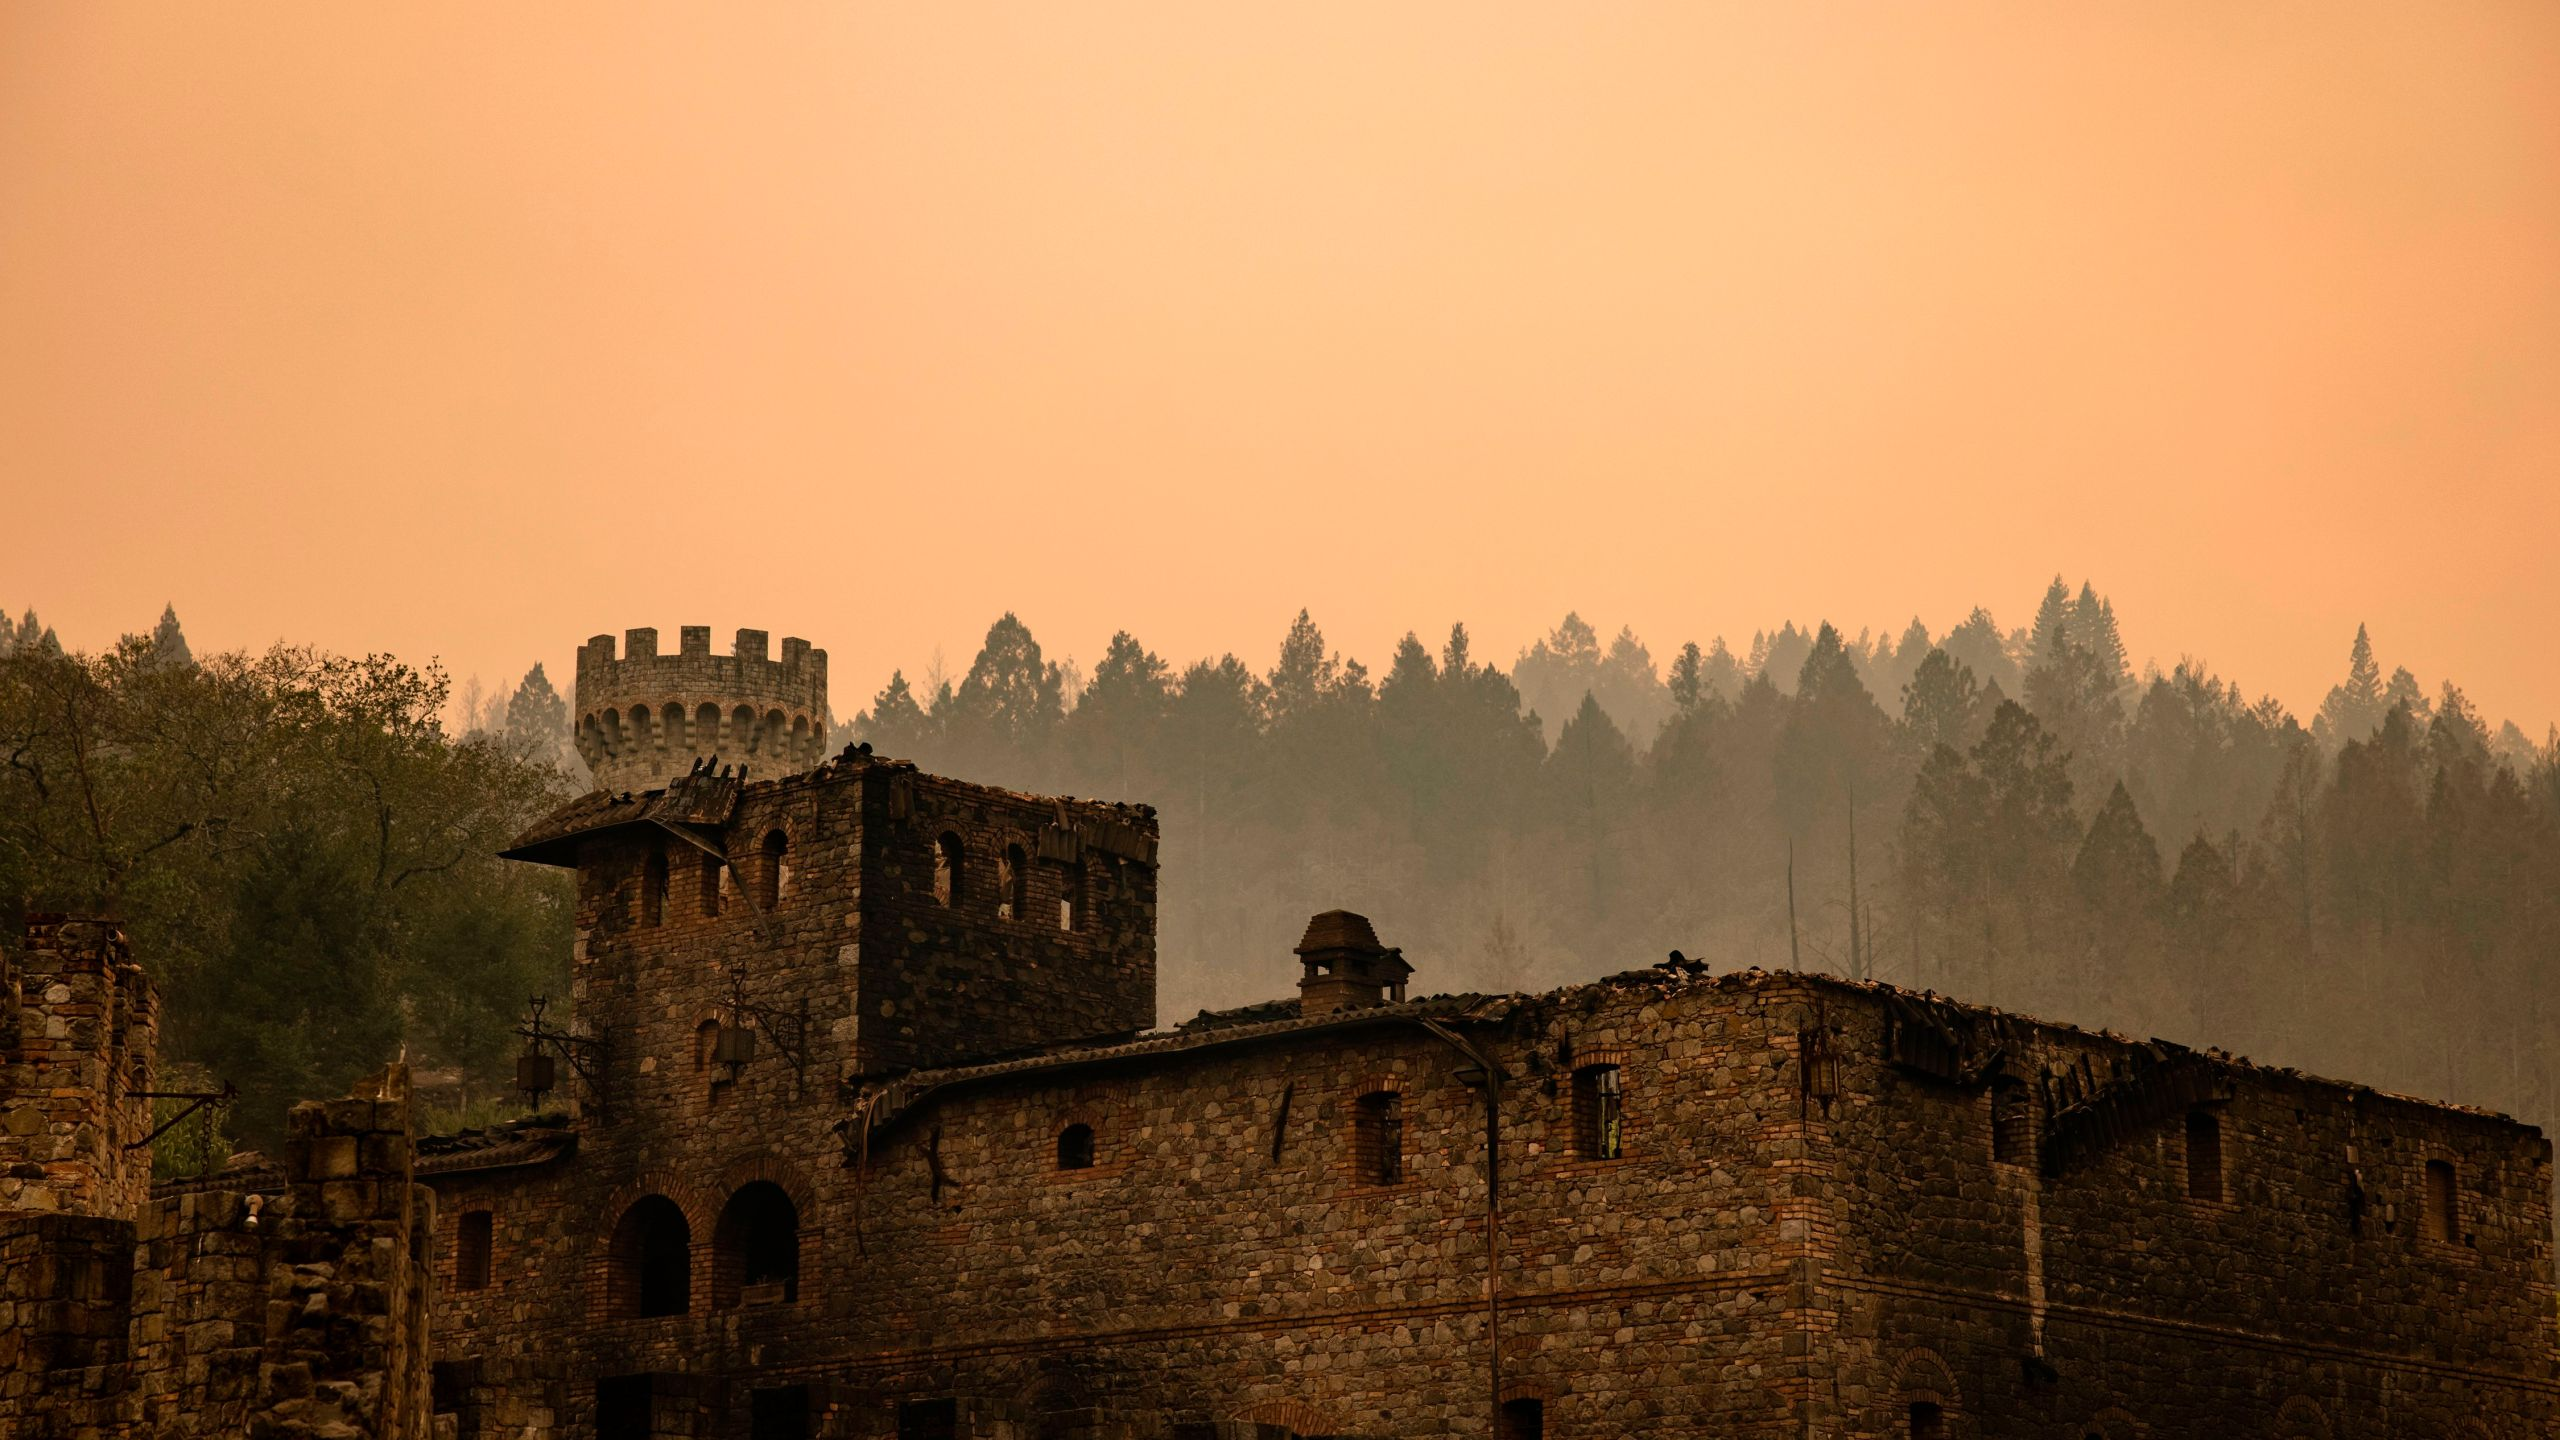 The Farm House at the Castello di Amorosa winery is seen gutted by the Glass Fire in Napa Valley on Sept. 29, 2020. (Samuel Corum / AFP / Getty Images)